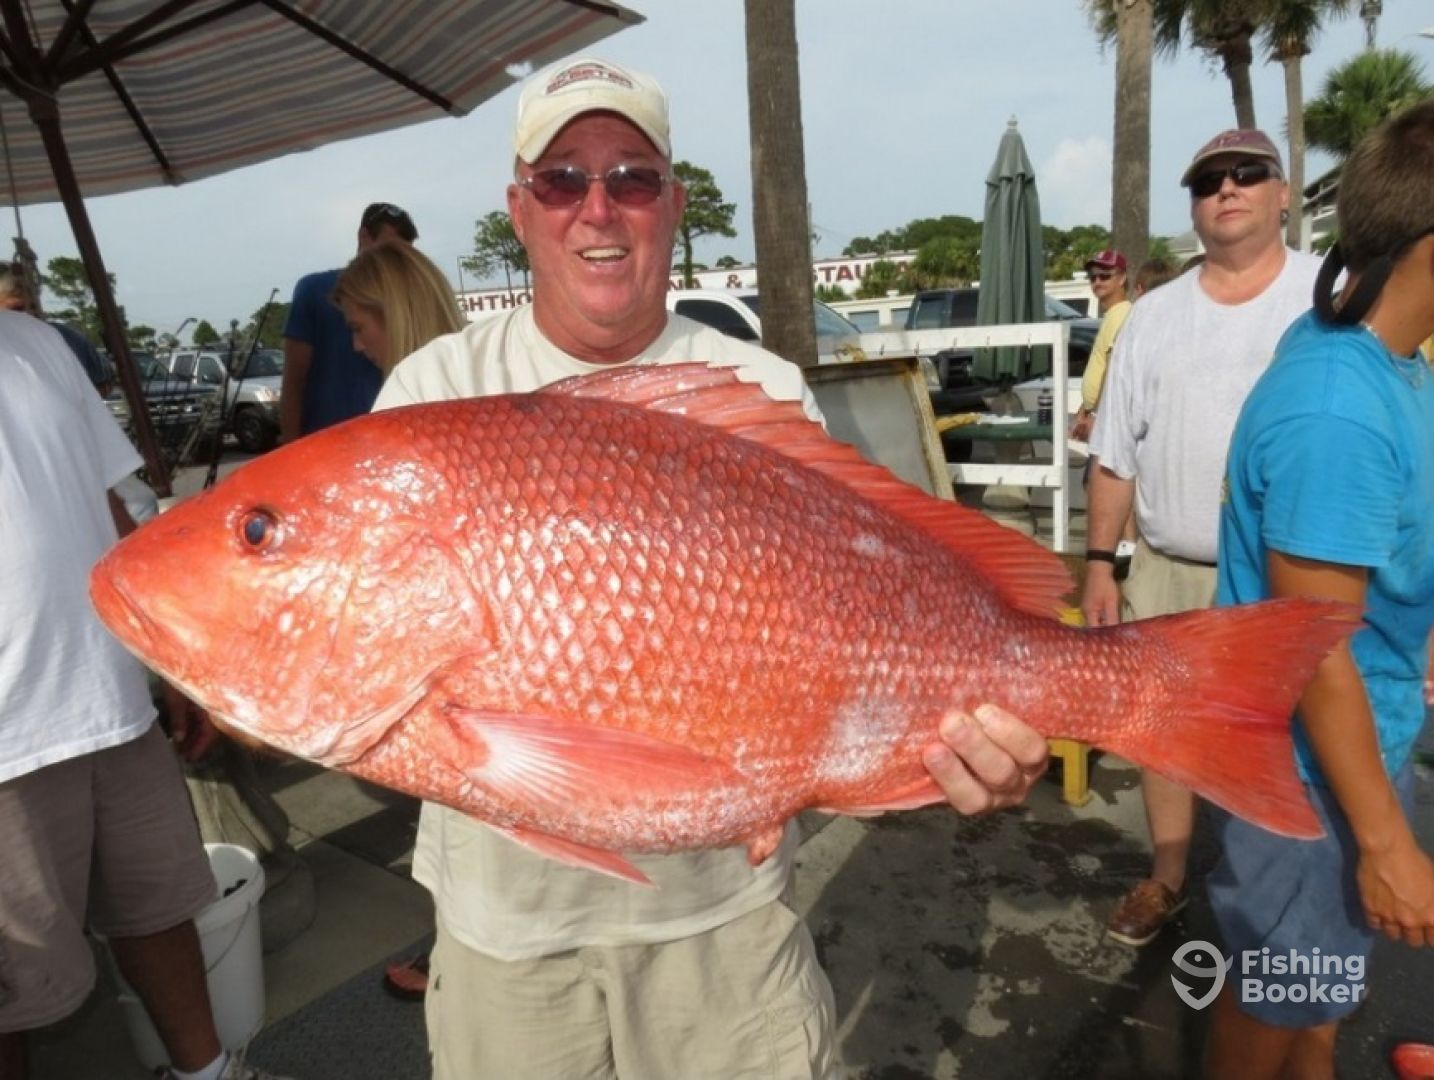 Capt ellis charters panama city beach fl fishingbooker for Snapper fish florida